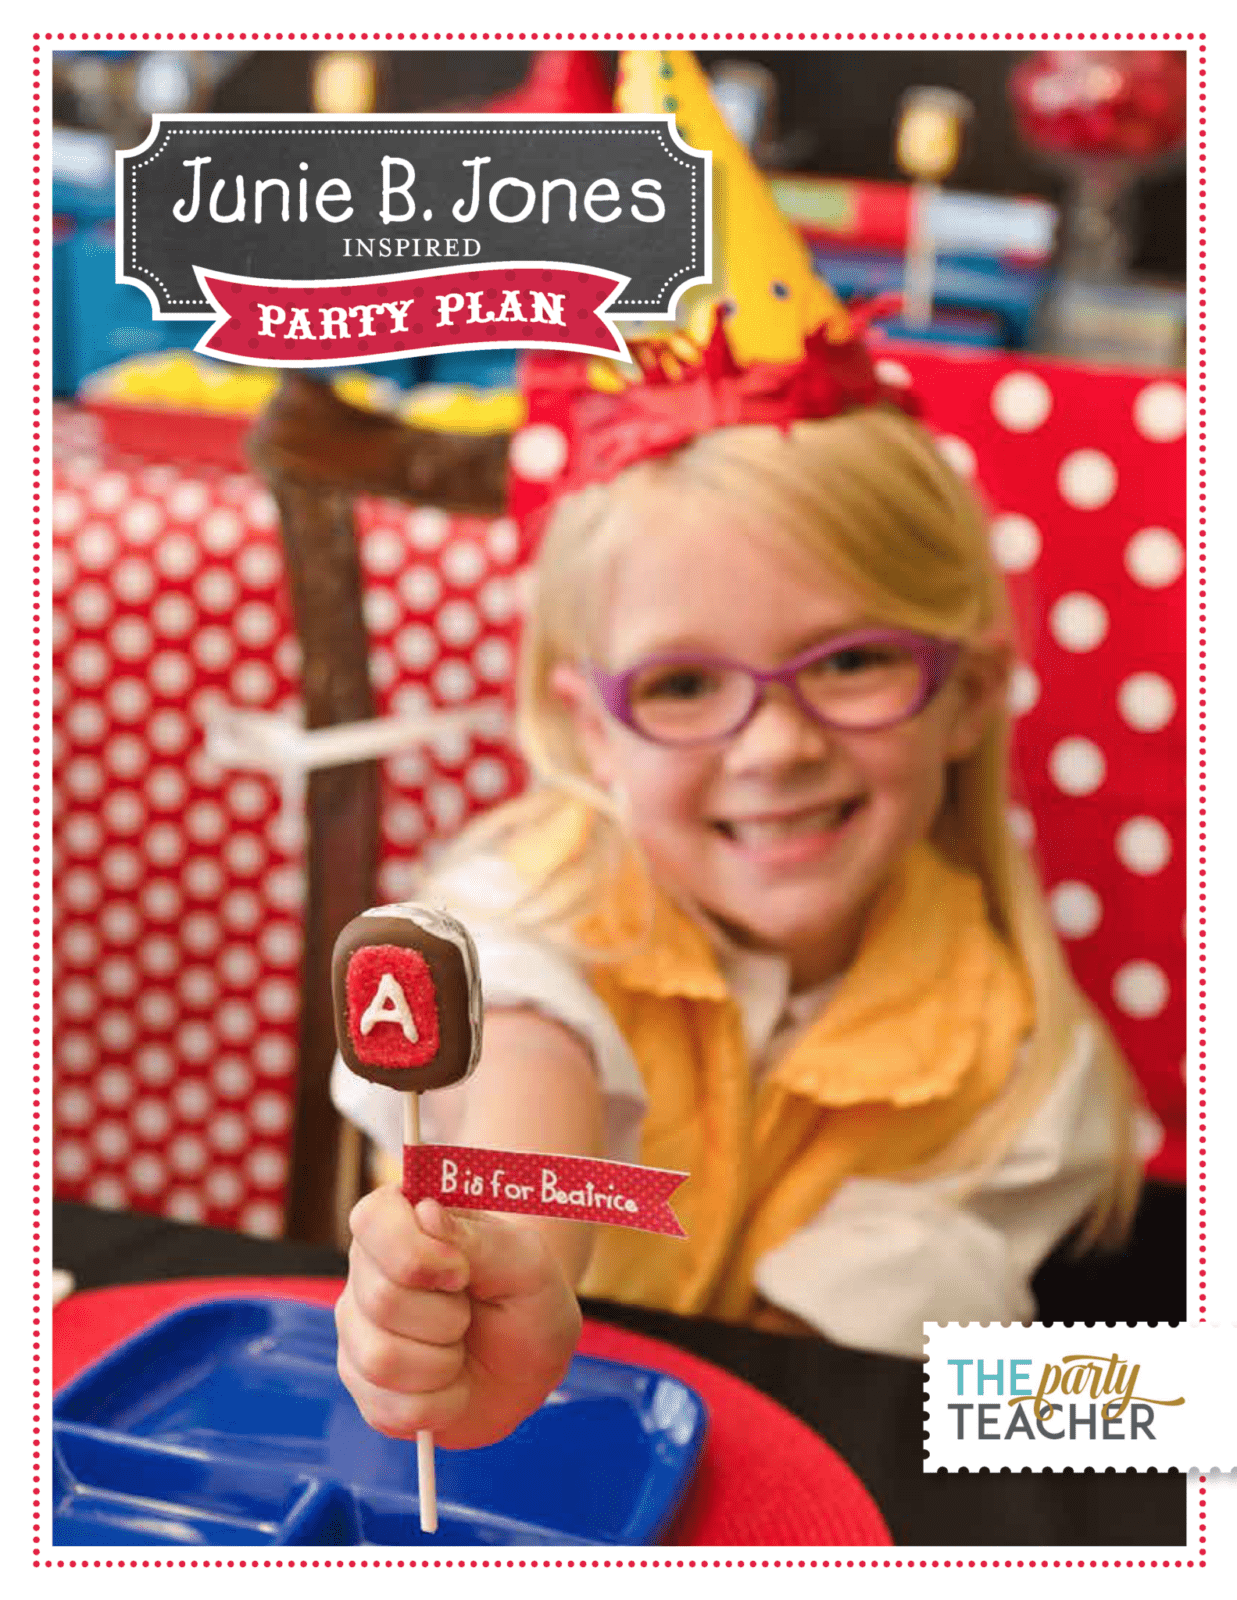 Junie B Jones Party Plan